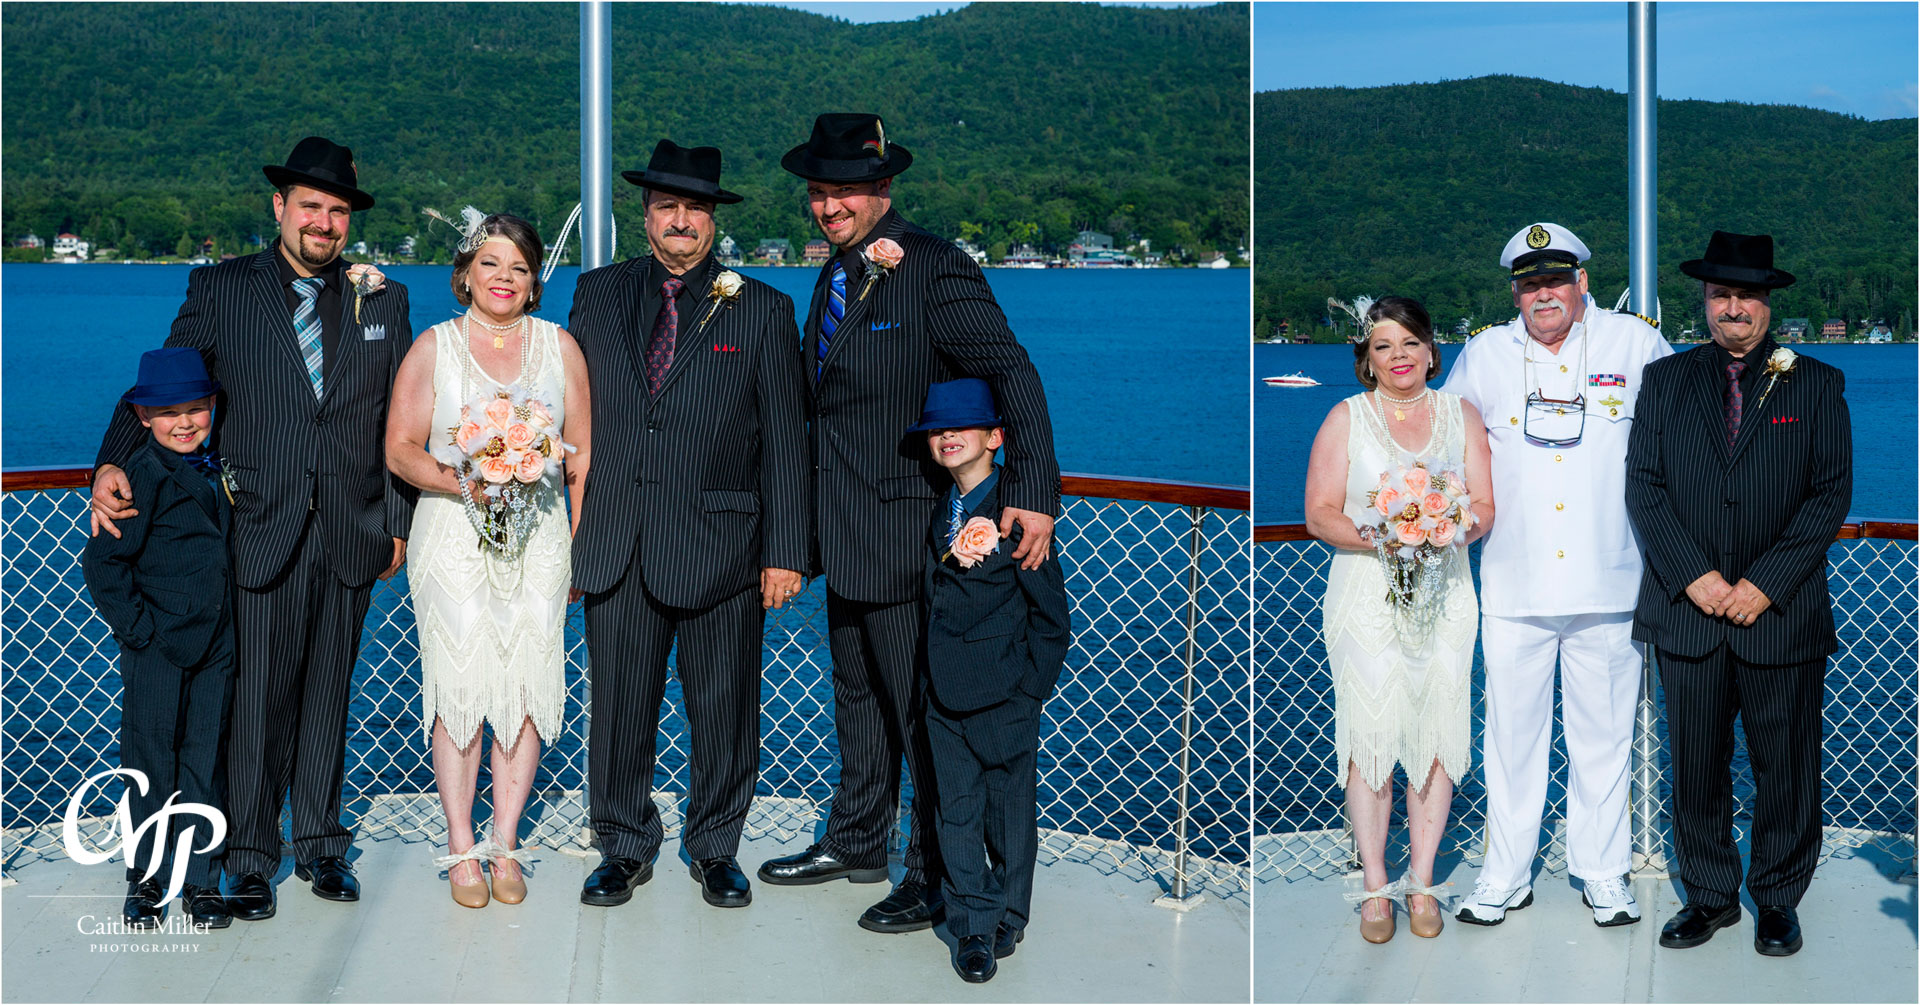 bombard-18.jpg from Jan and Robert's vow renewal on shoreline Cruise's Adirondac Boat on Lake George, NY by Saratoga Wedding Photographer Caitlin Miller Photography. Lake George Wedding Photographer. Stamford wedding photographer. Albany wedding photographer. Shoreline Cruises Wedding Photographer. Saratoga Wedding Photographer